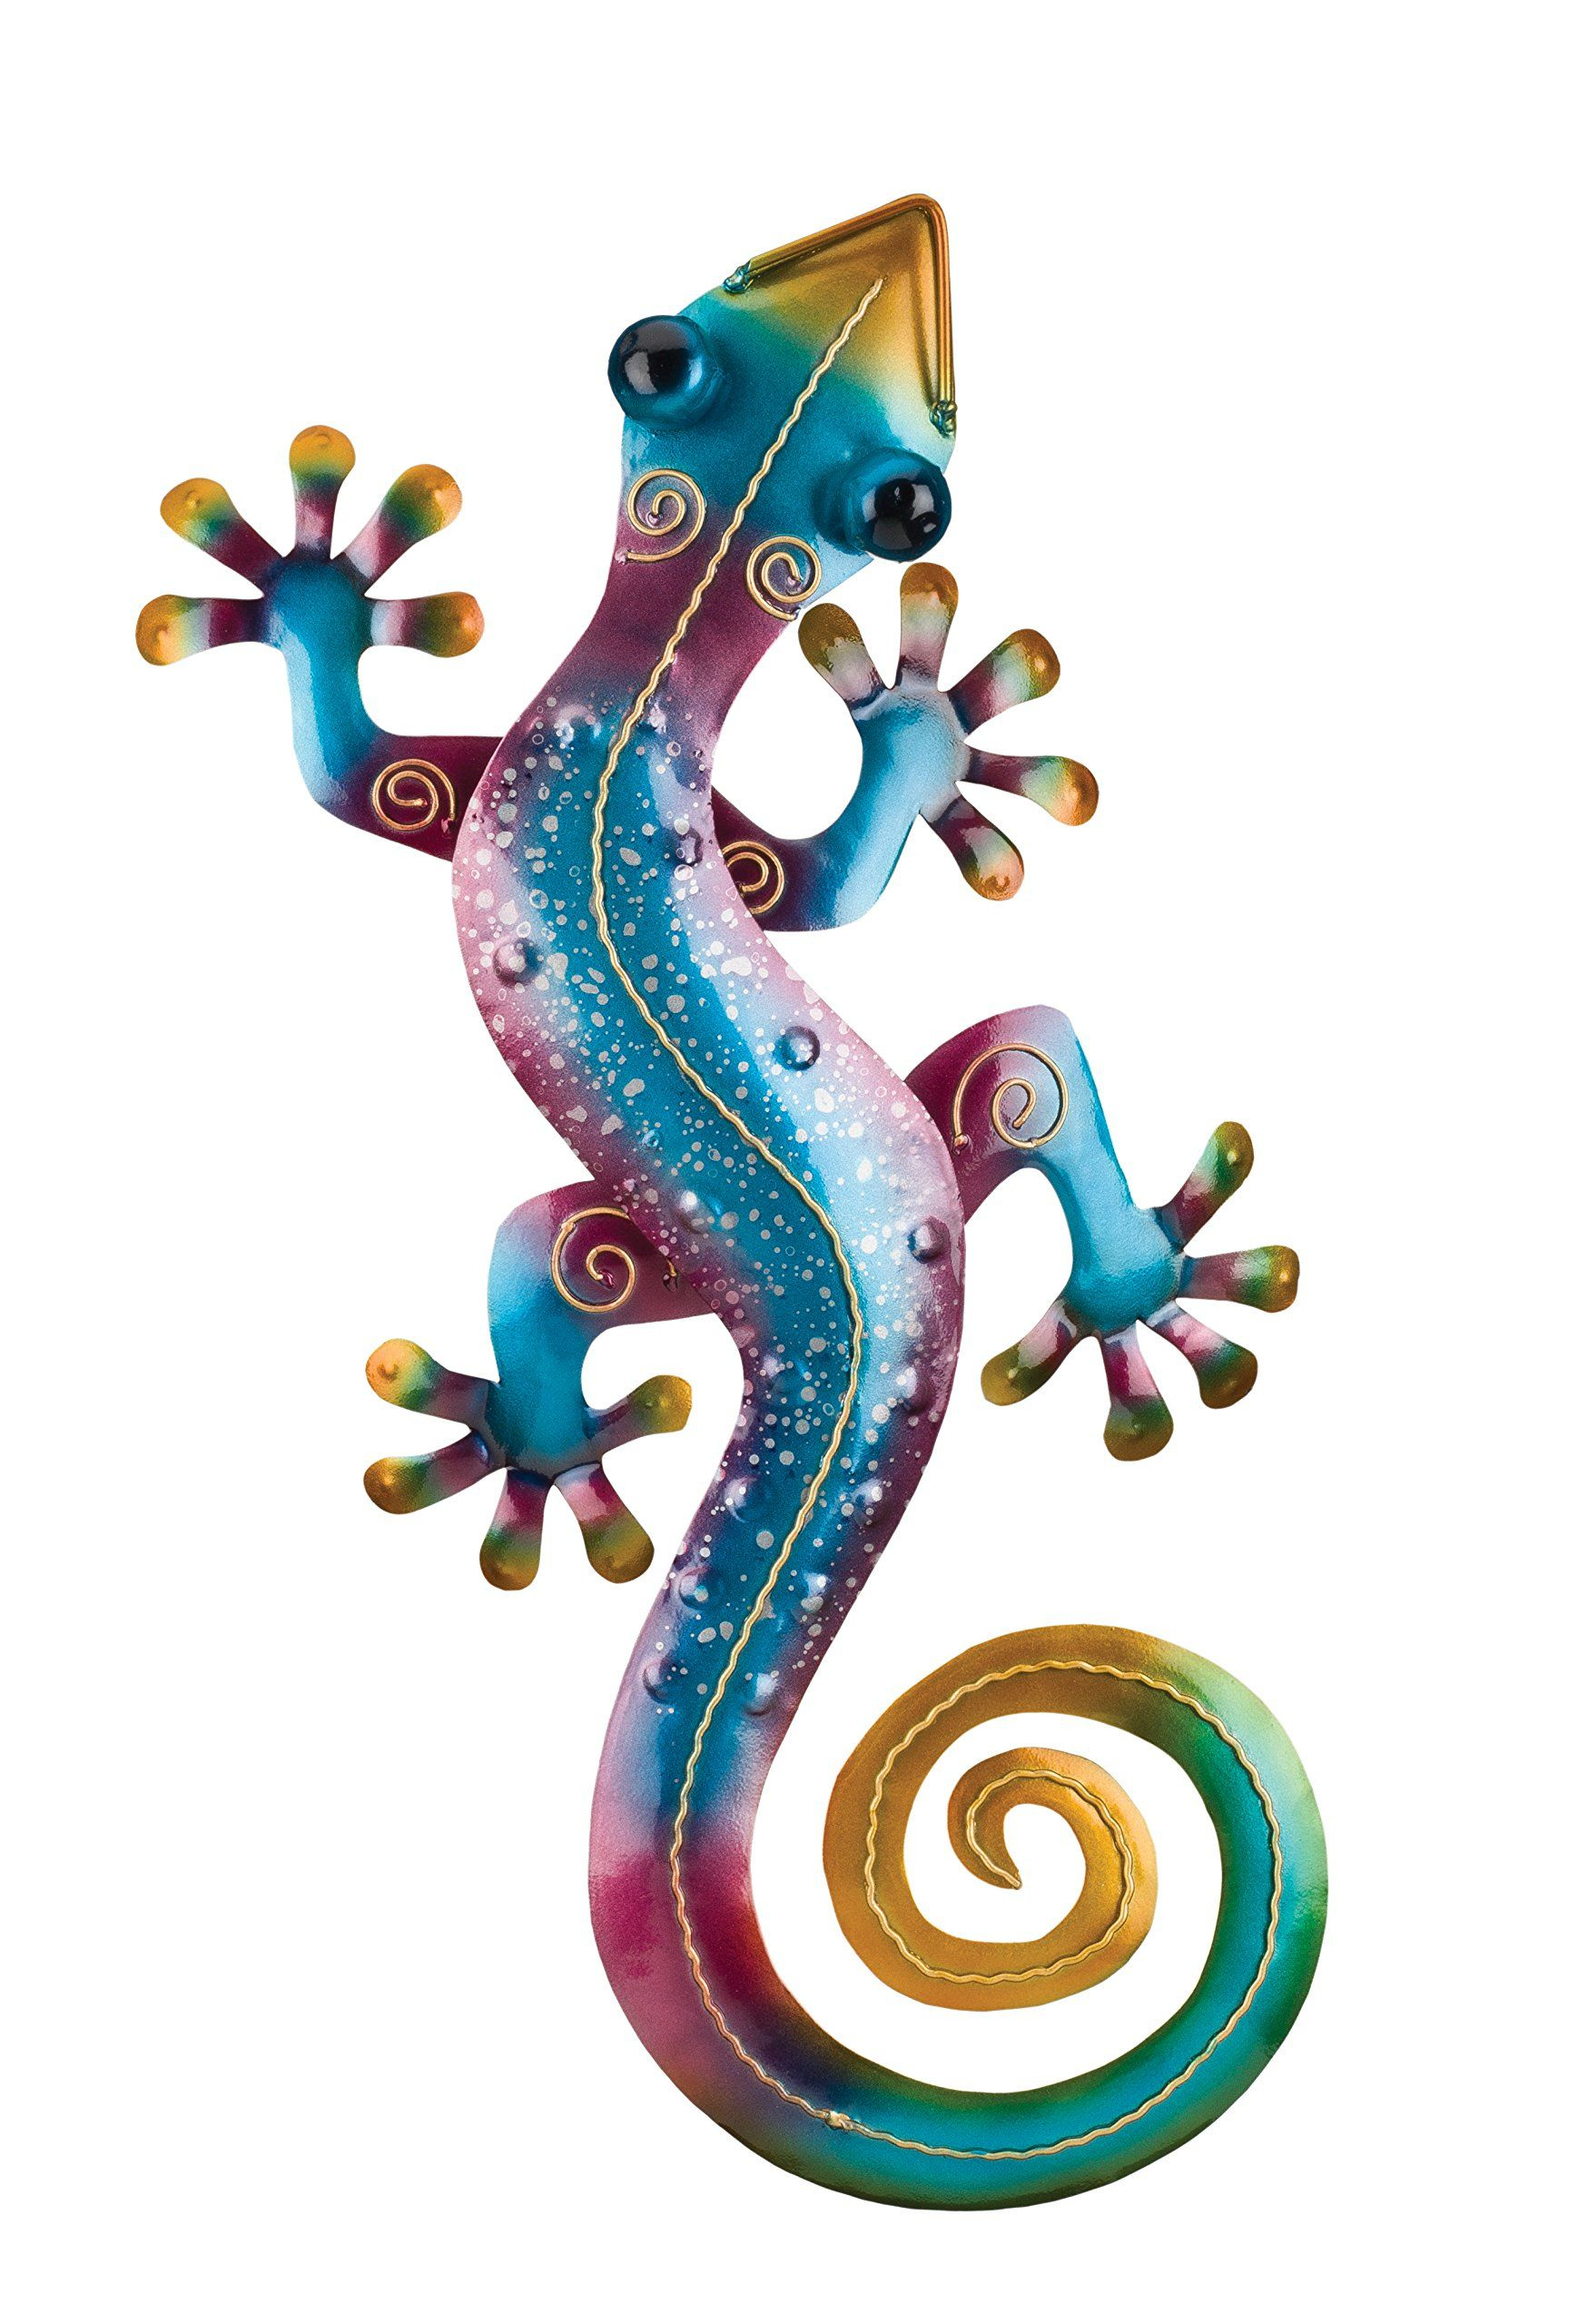 2019 Gecko Wall Decor Regarding Regal Art And Gift Gecko Wall Decor 19 Rainbow Purple * You Can Find (View 11 of 20)